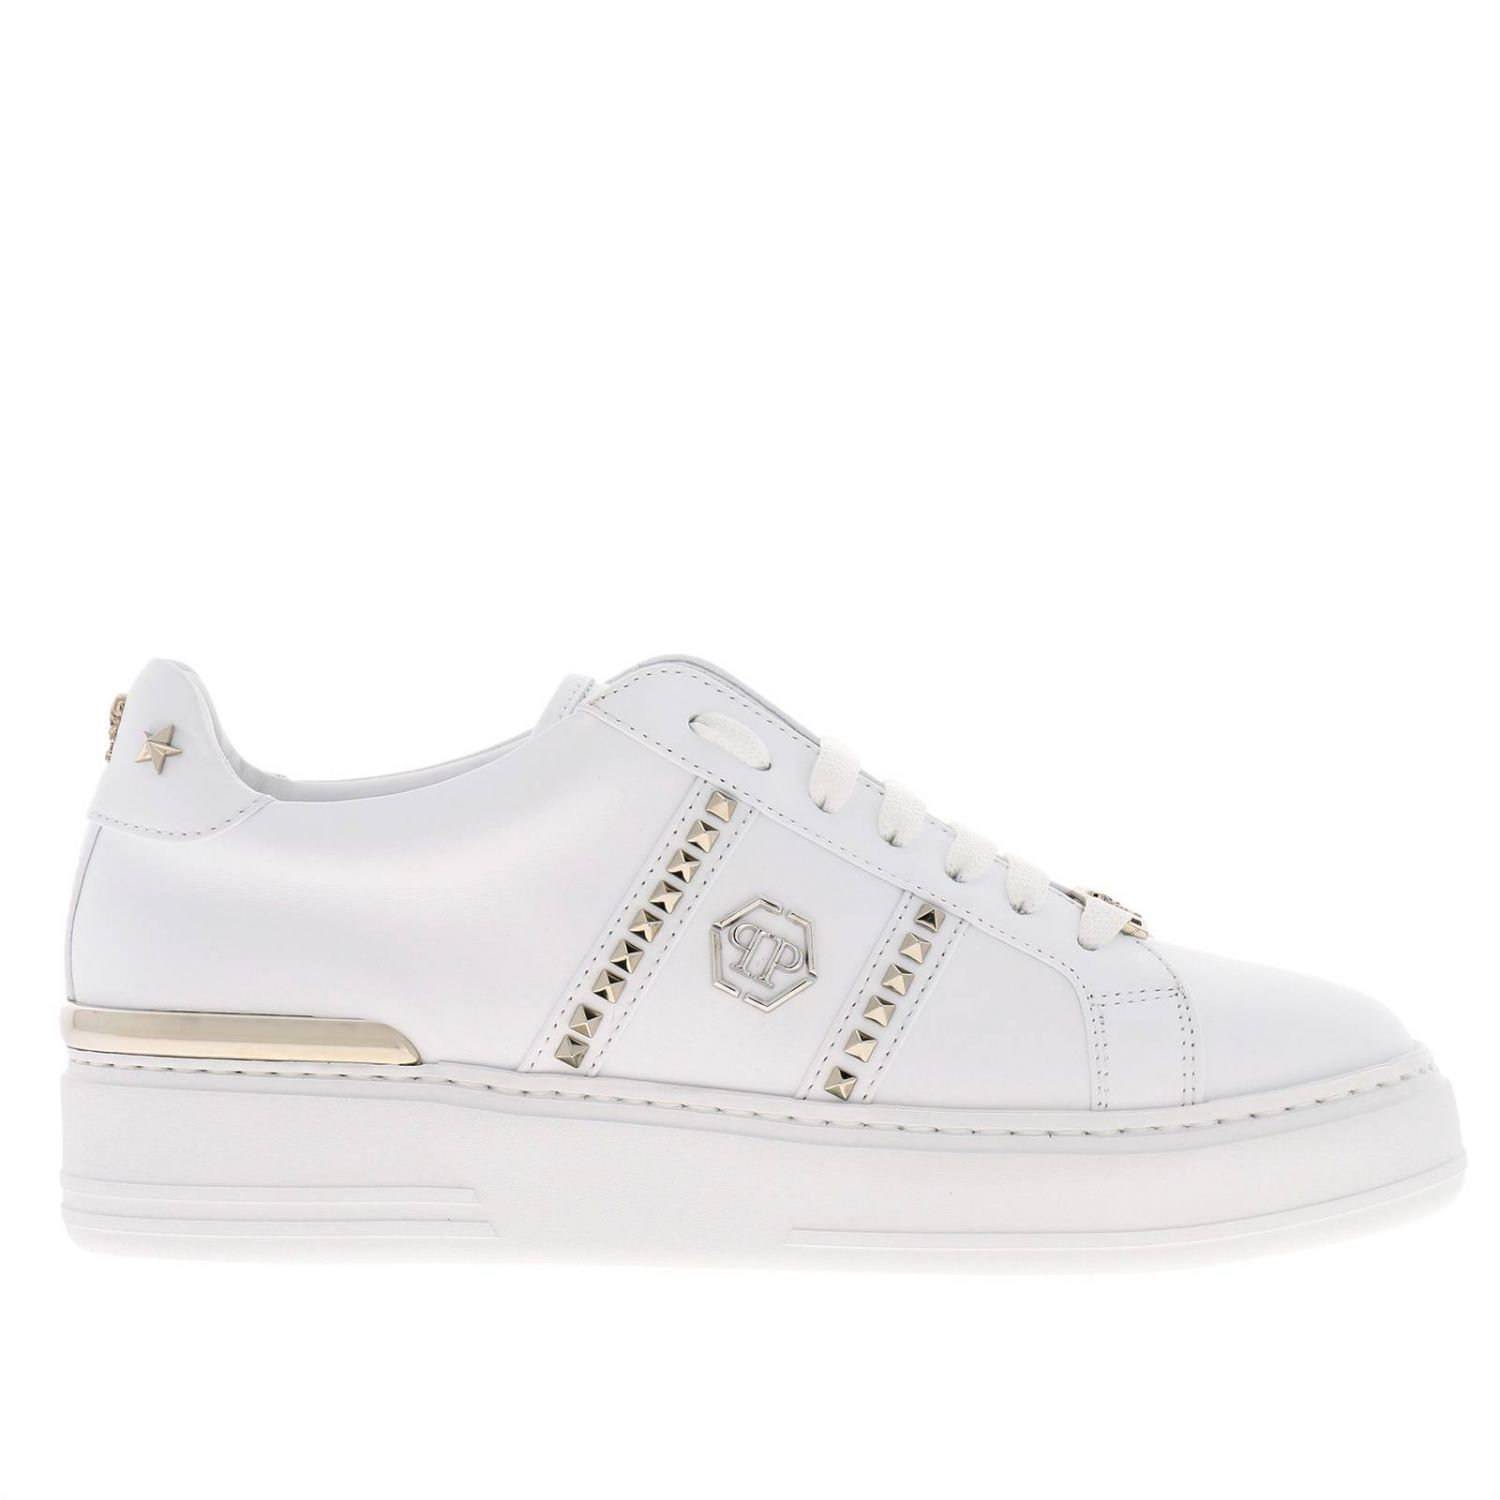 Shoes women Philipp Plein white 1